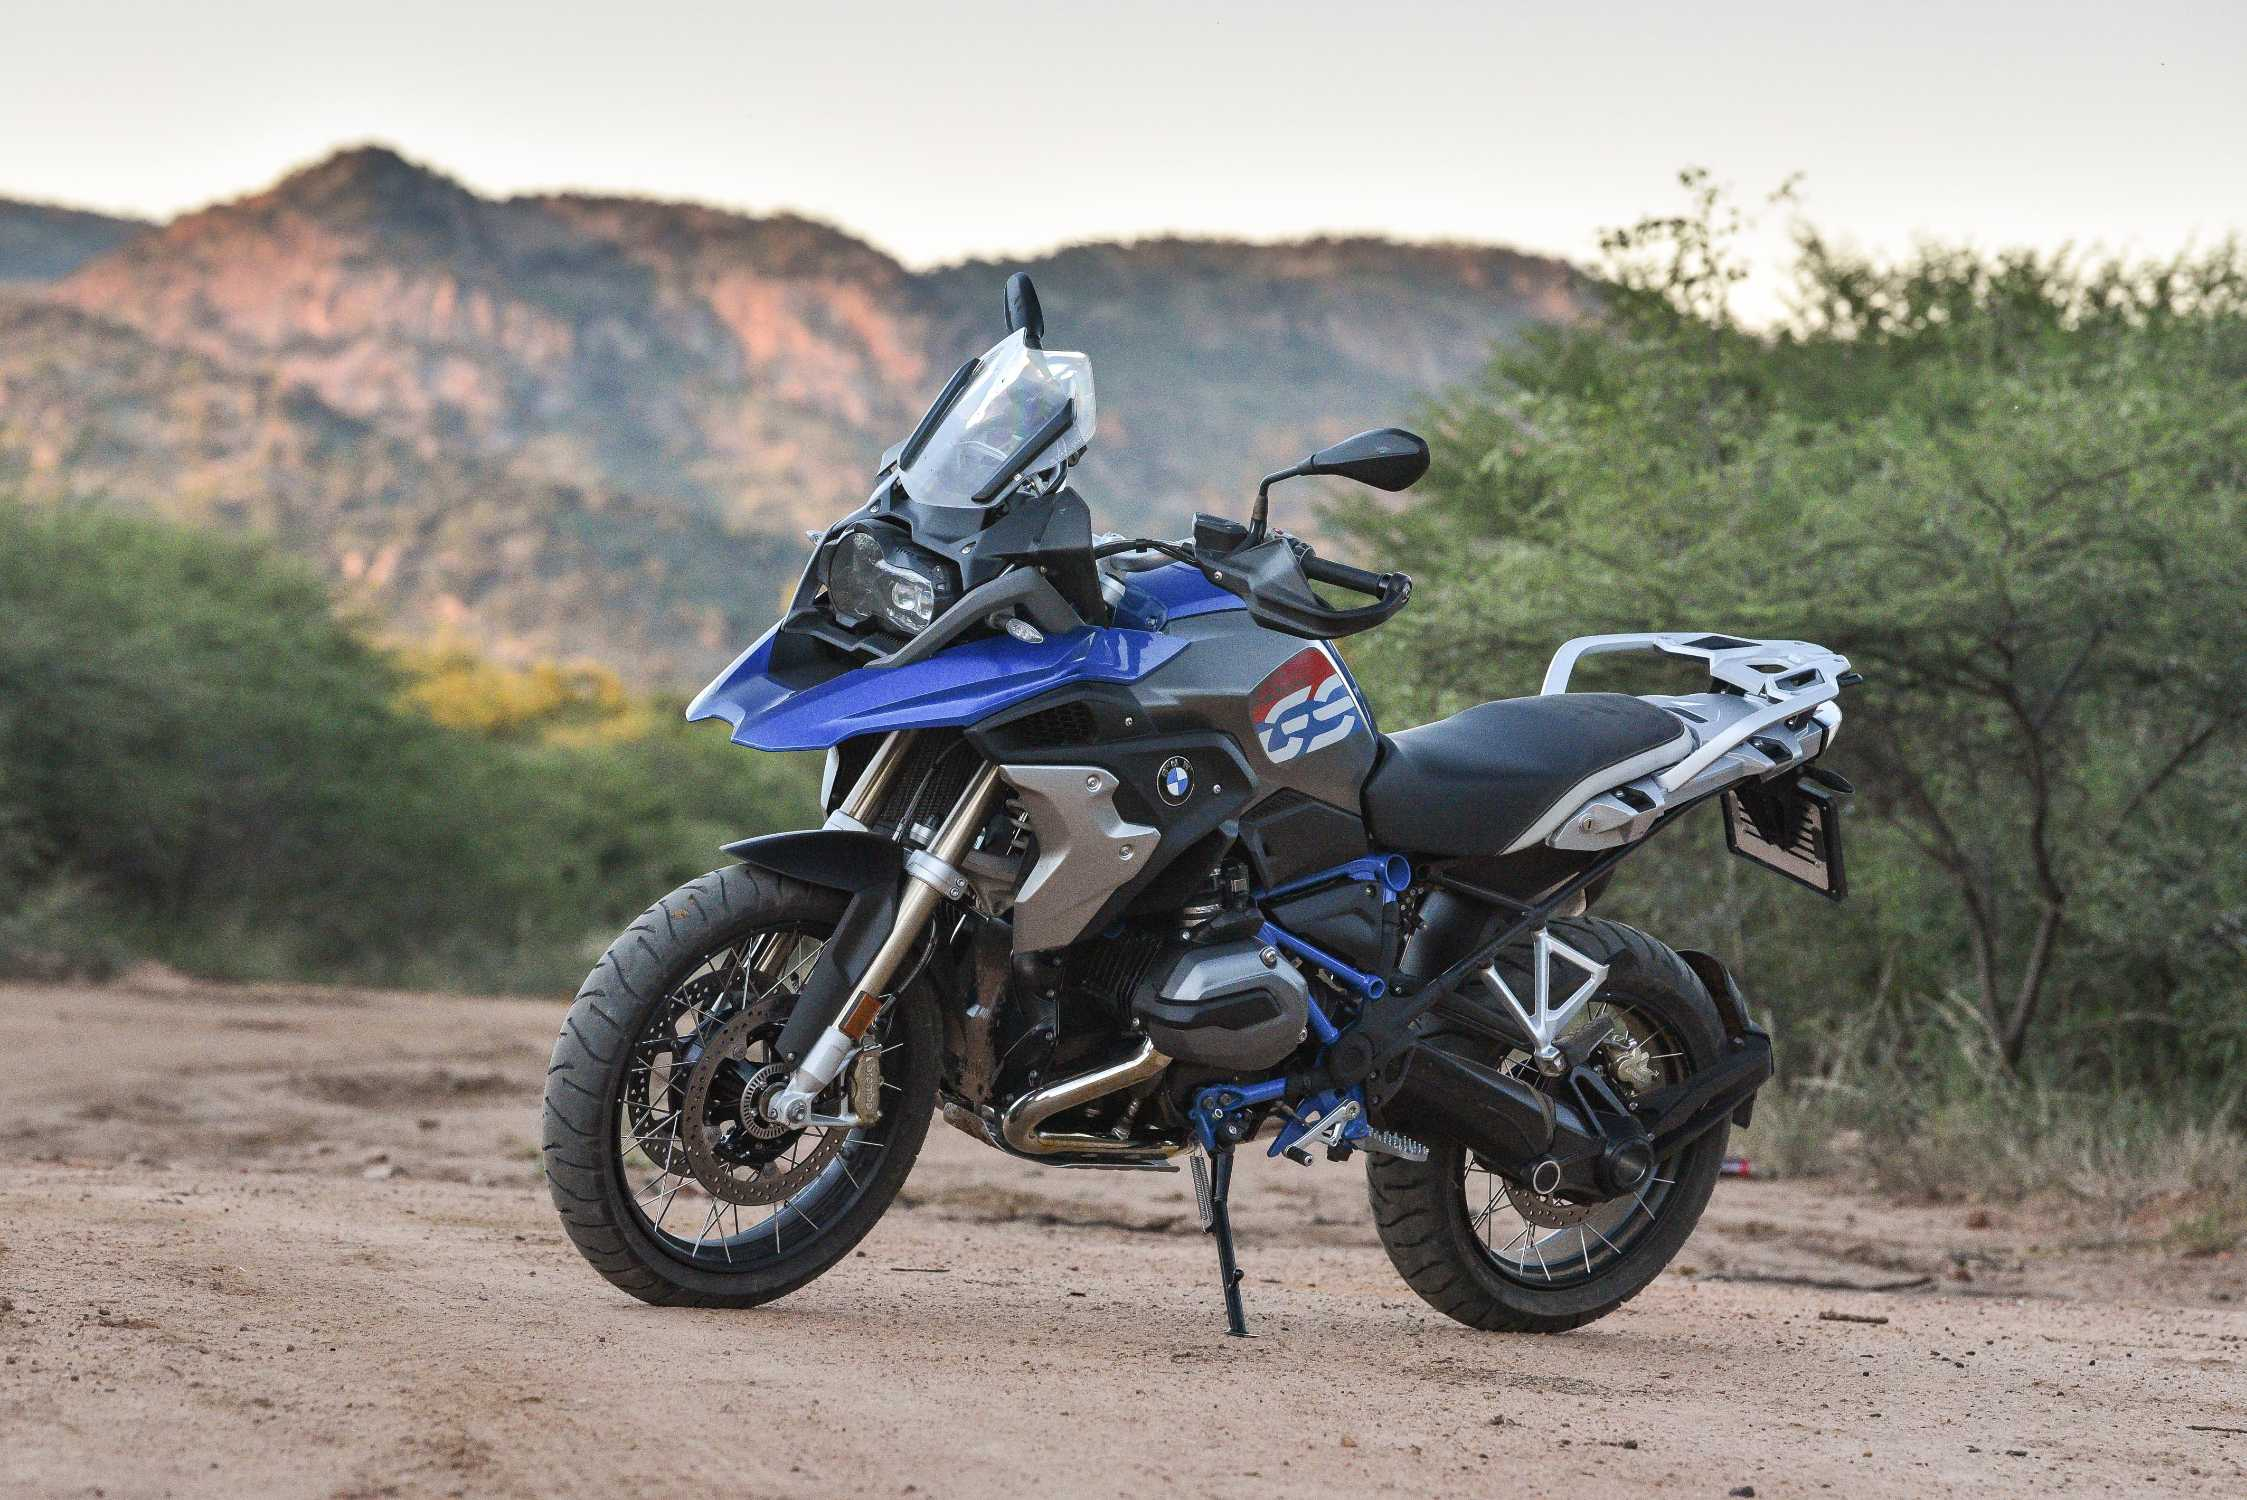 The new BMW R 1200 GS now available in South Africa.